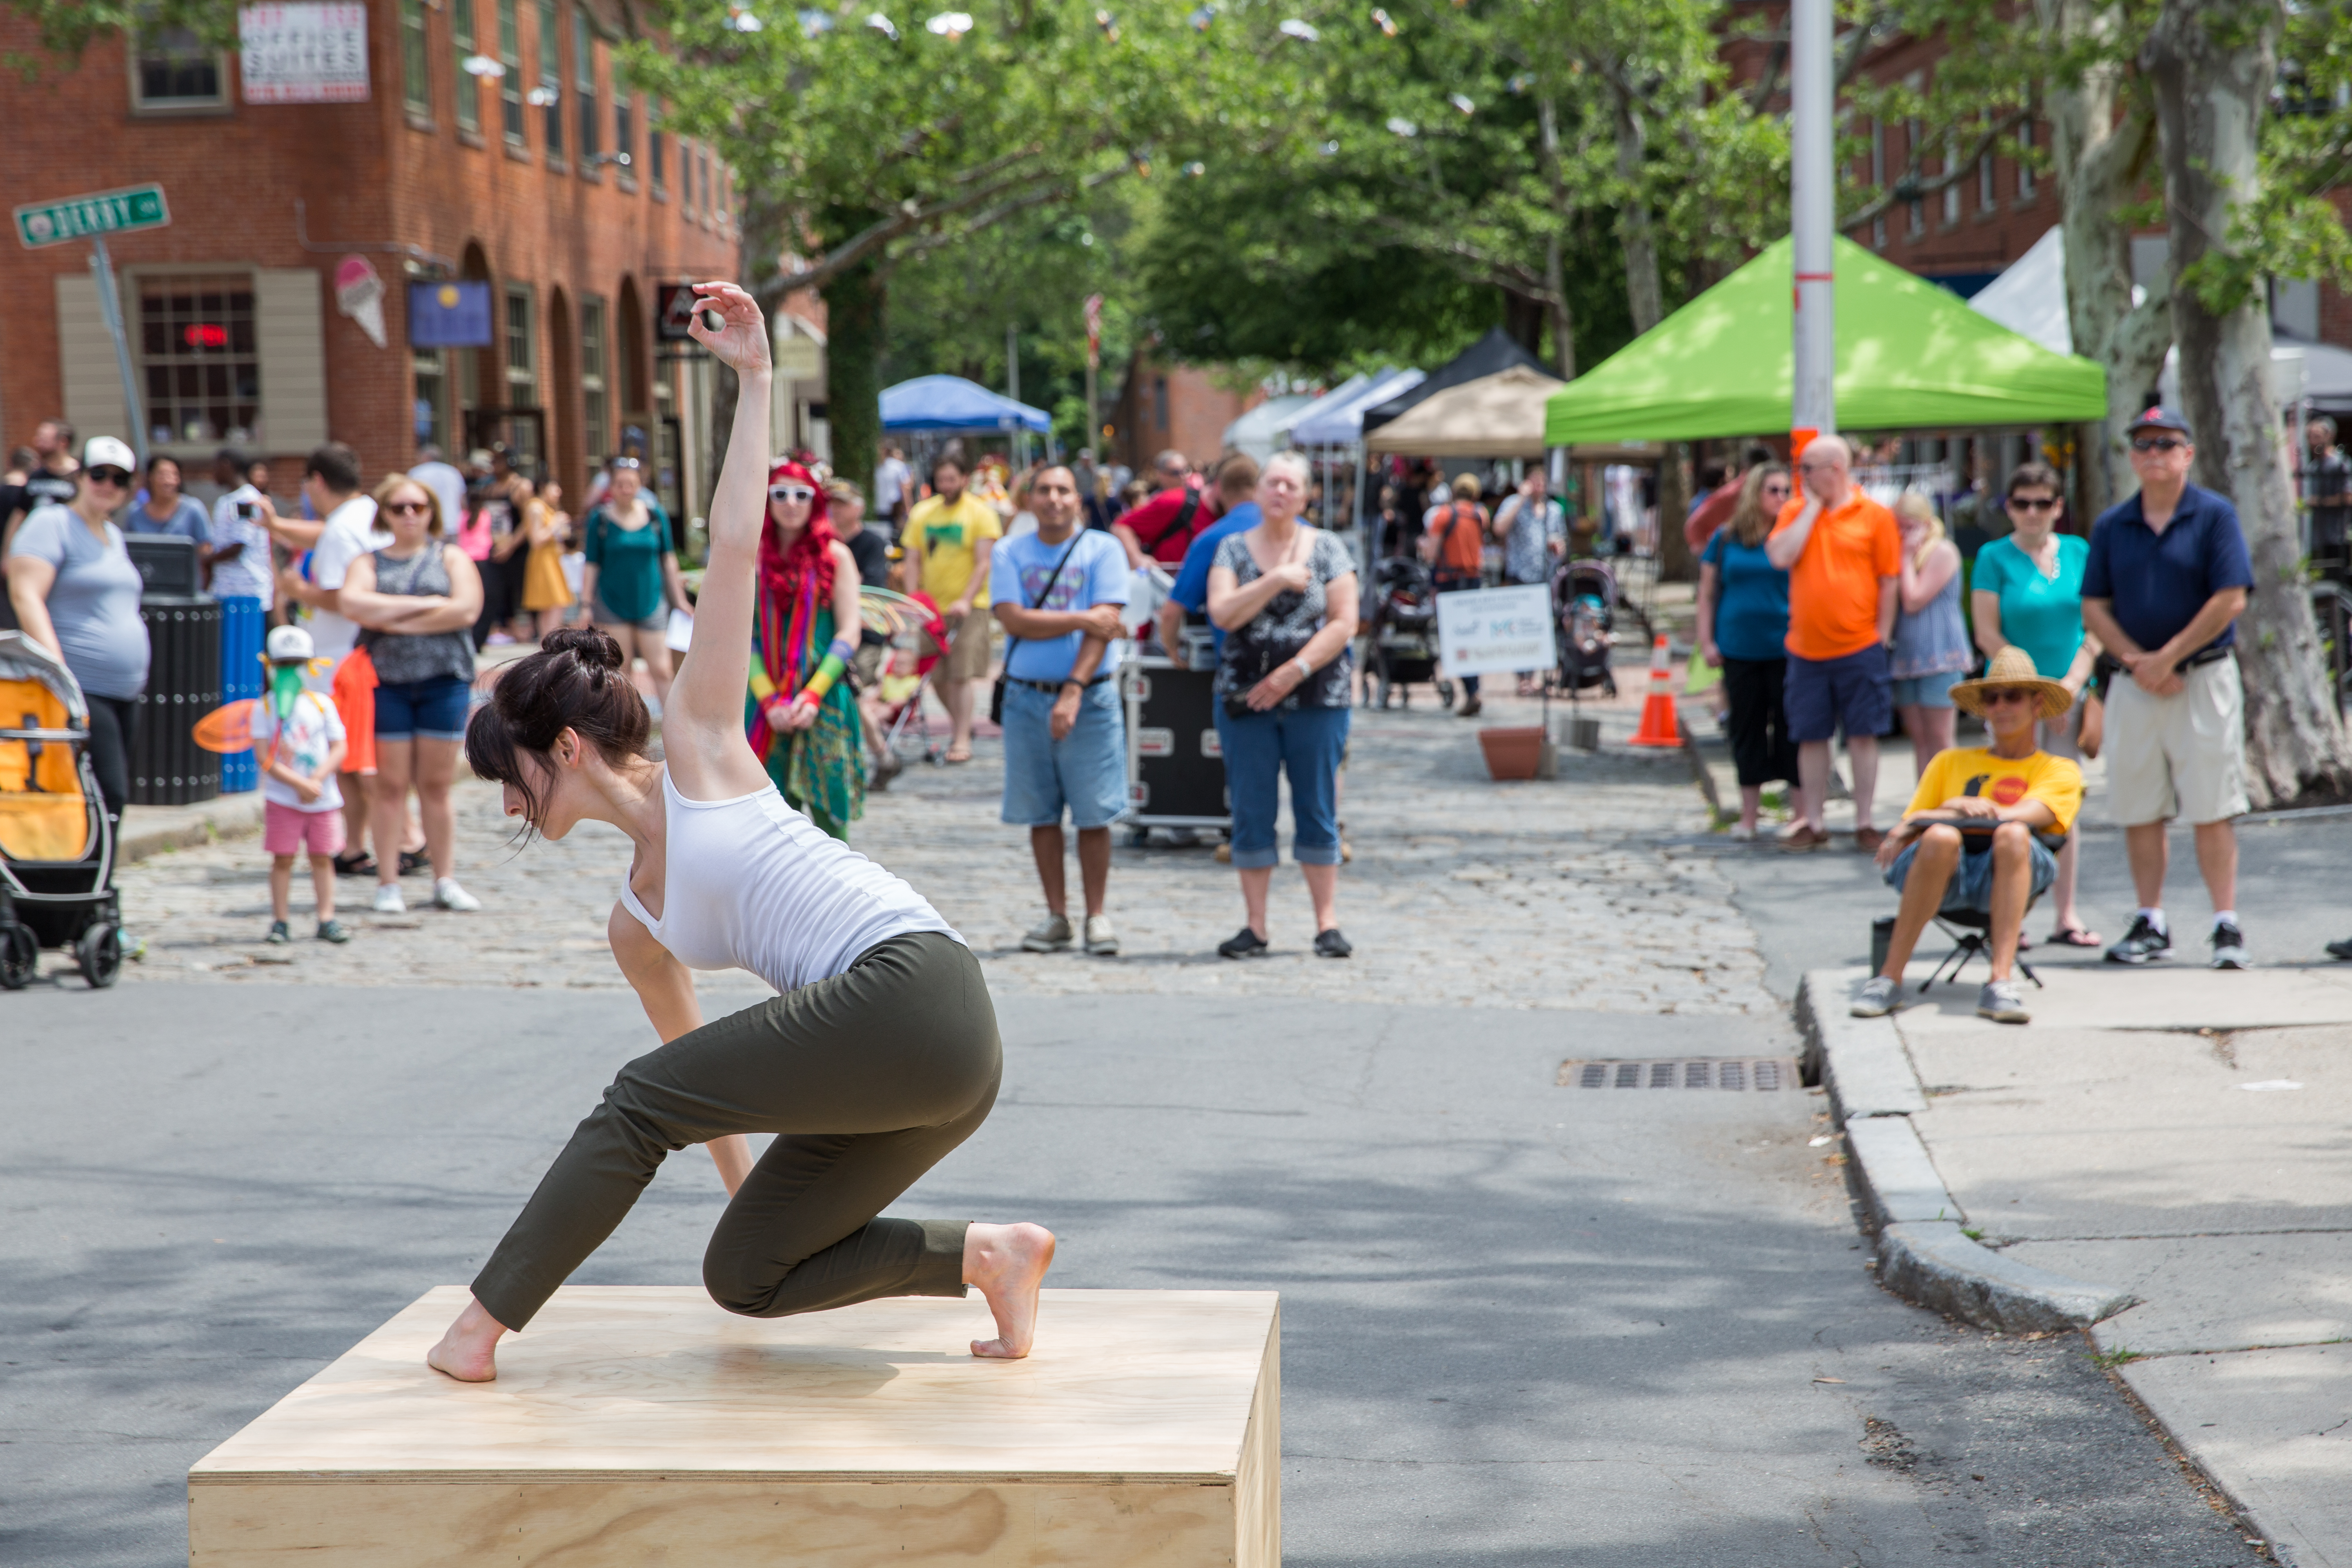 Dancers can be seen performing on the tiny four-by-four stages of the Salem Arts Festival.